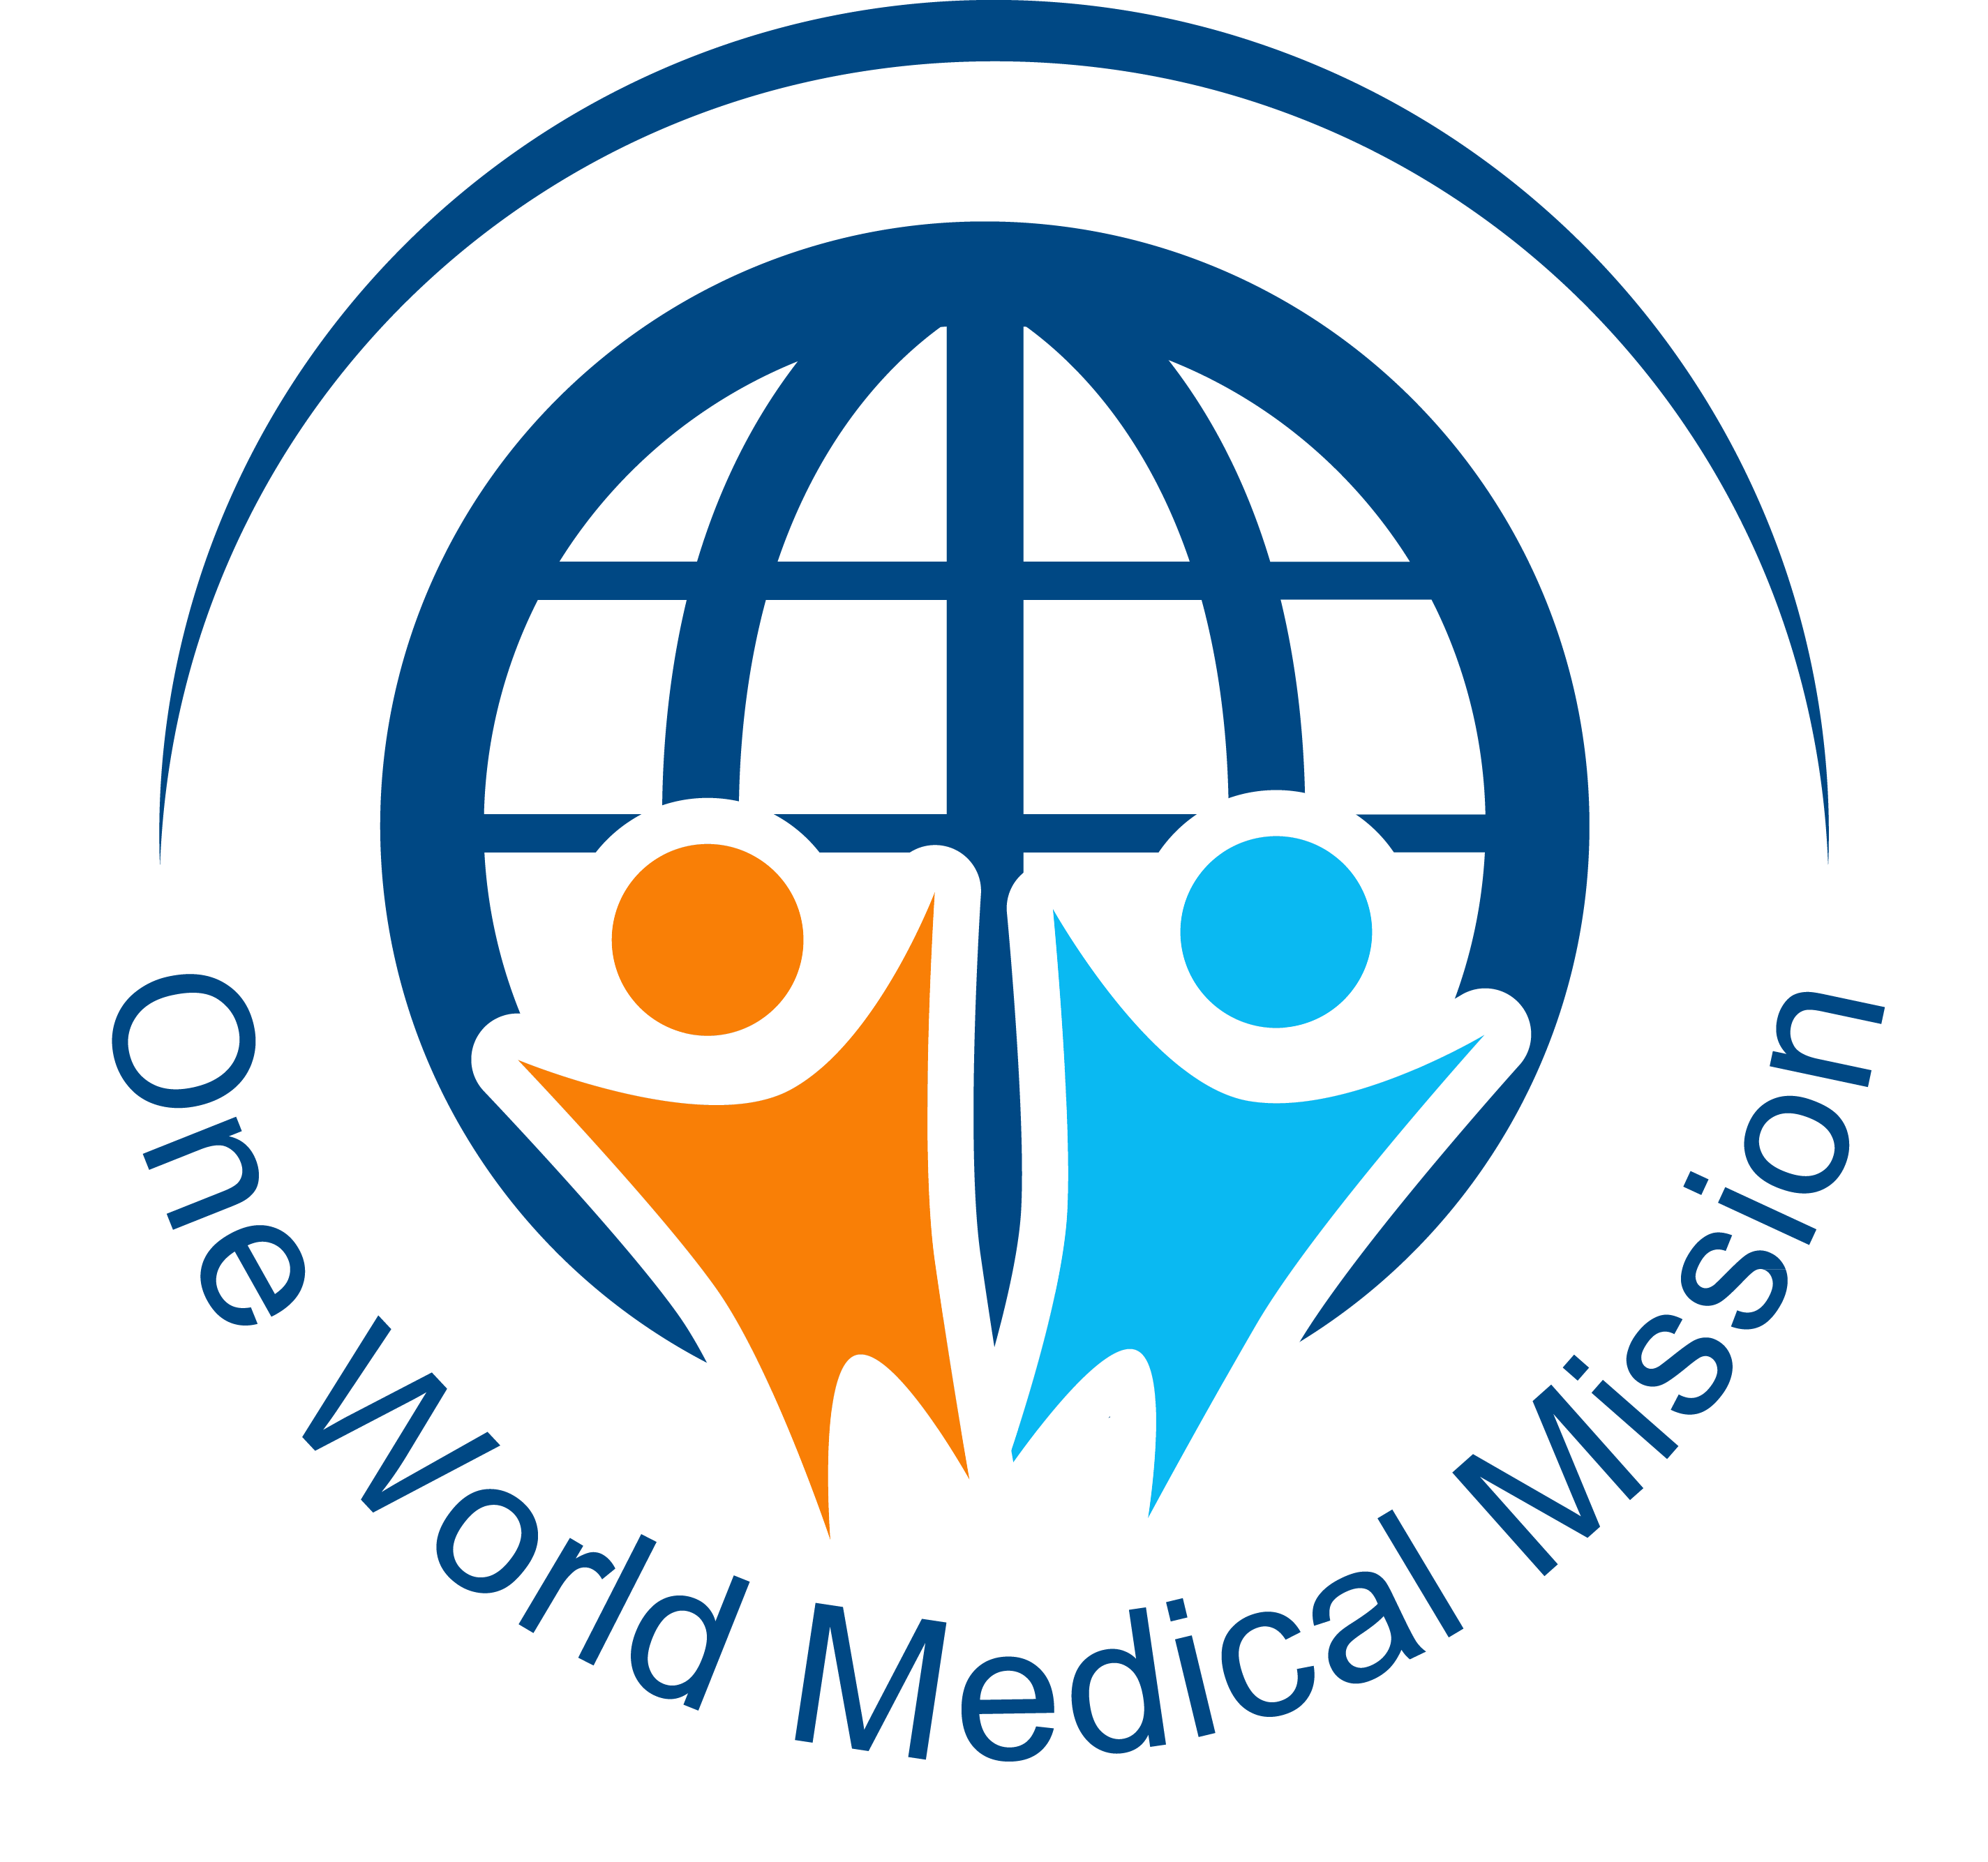 One World Medical Mission